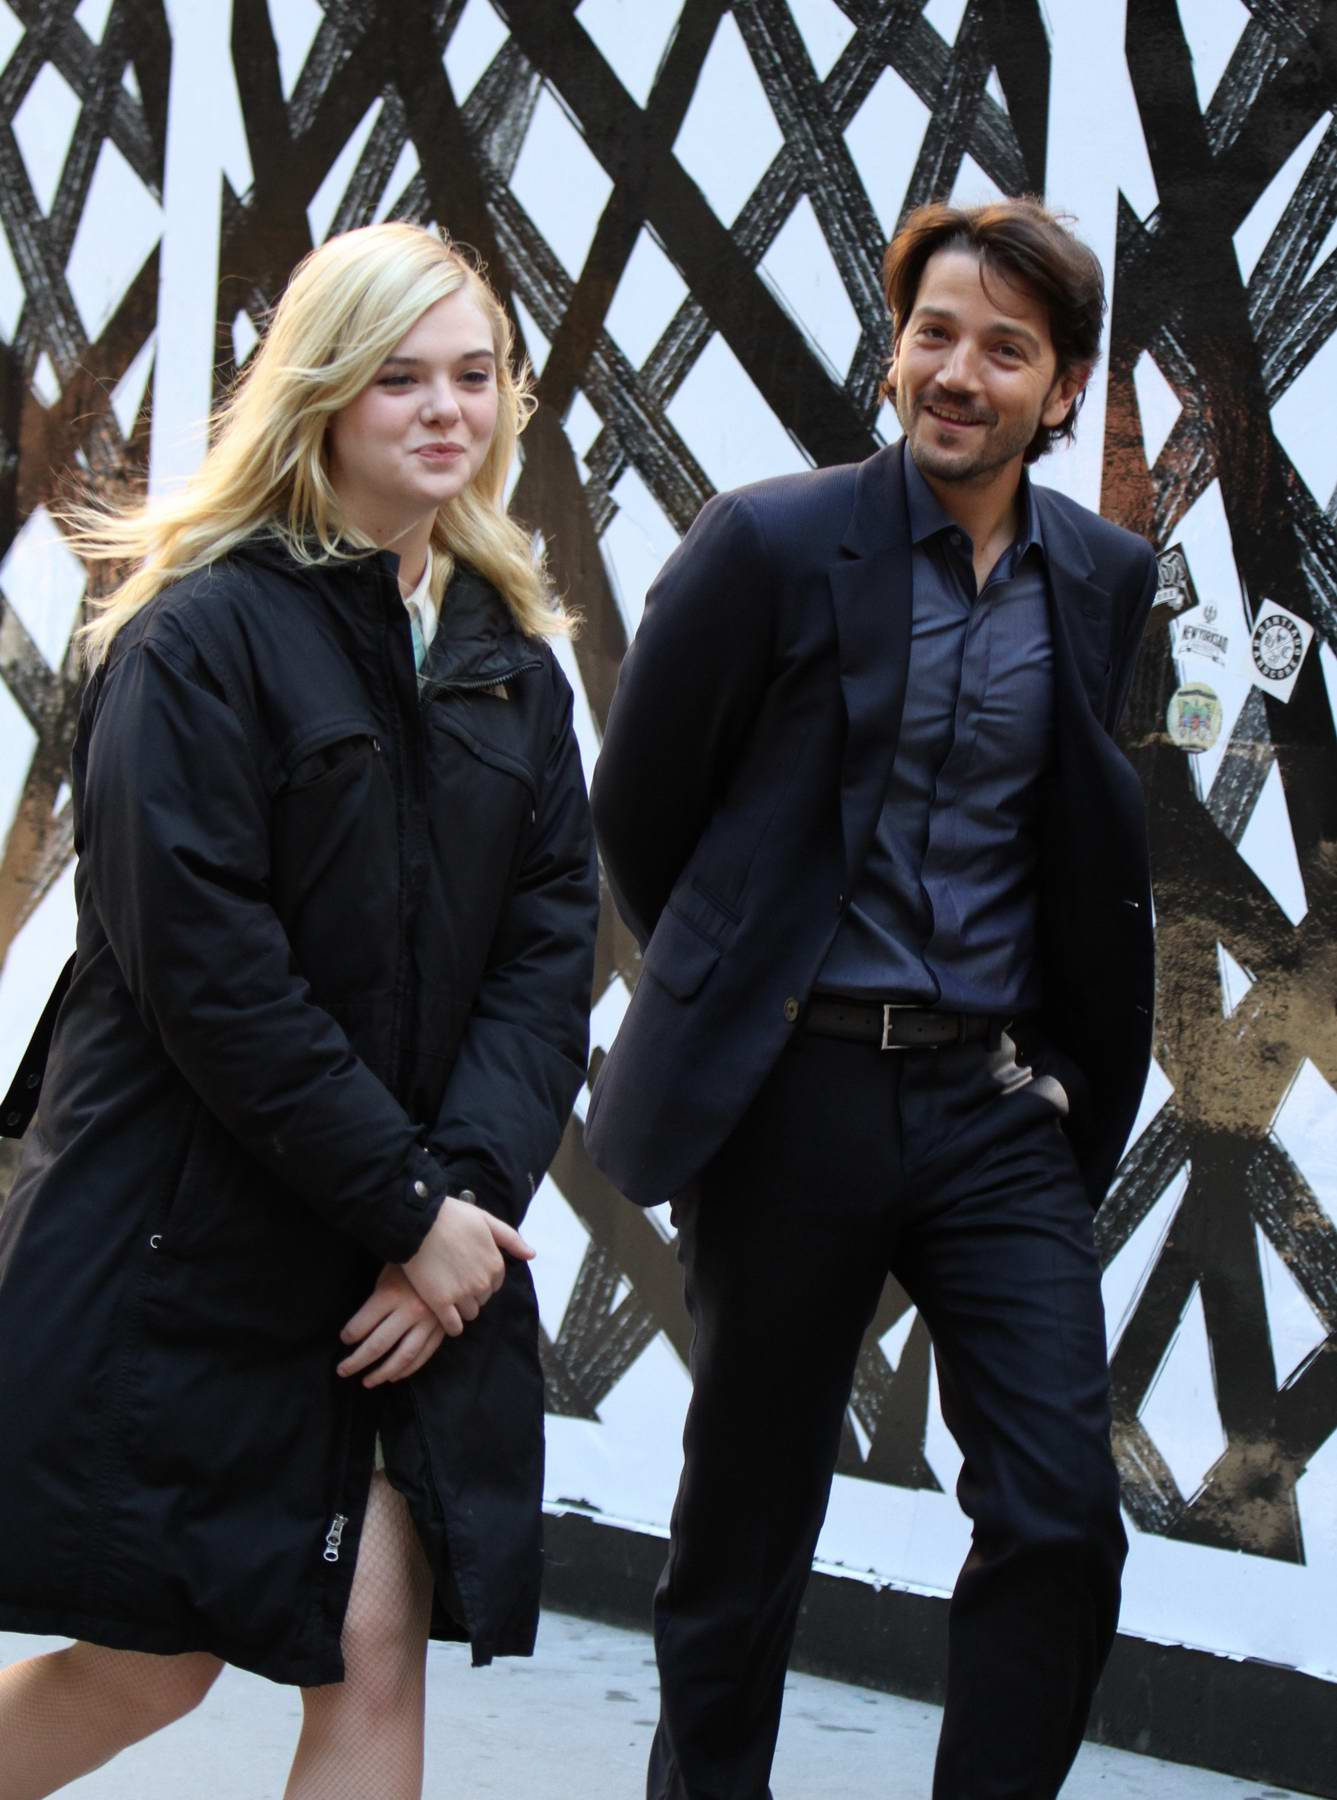 Elle Fanning and Diego Luna filming for Woody Allen project in SoHo, New York